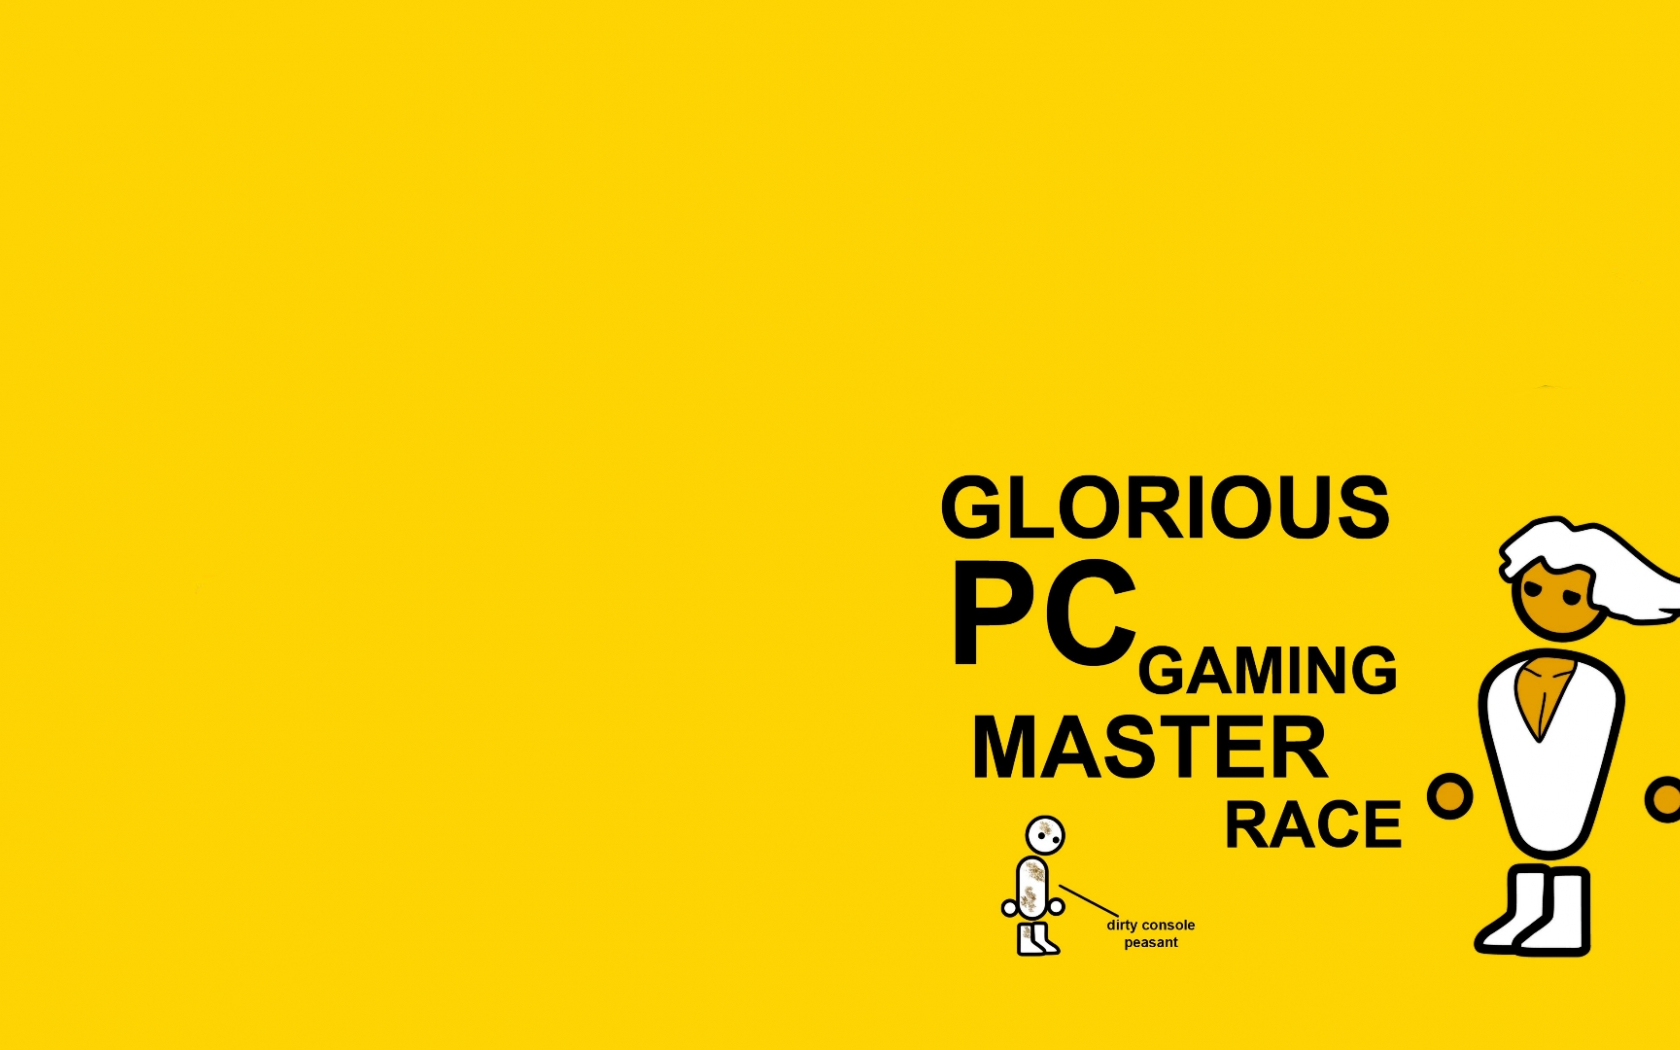 Free Download Pics For Pc Master Race Wallpaper 1920x1080